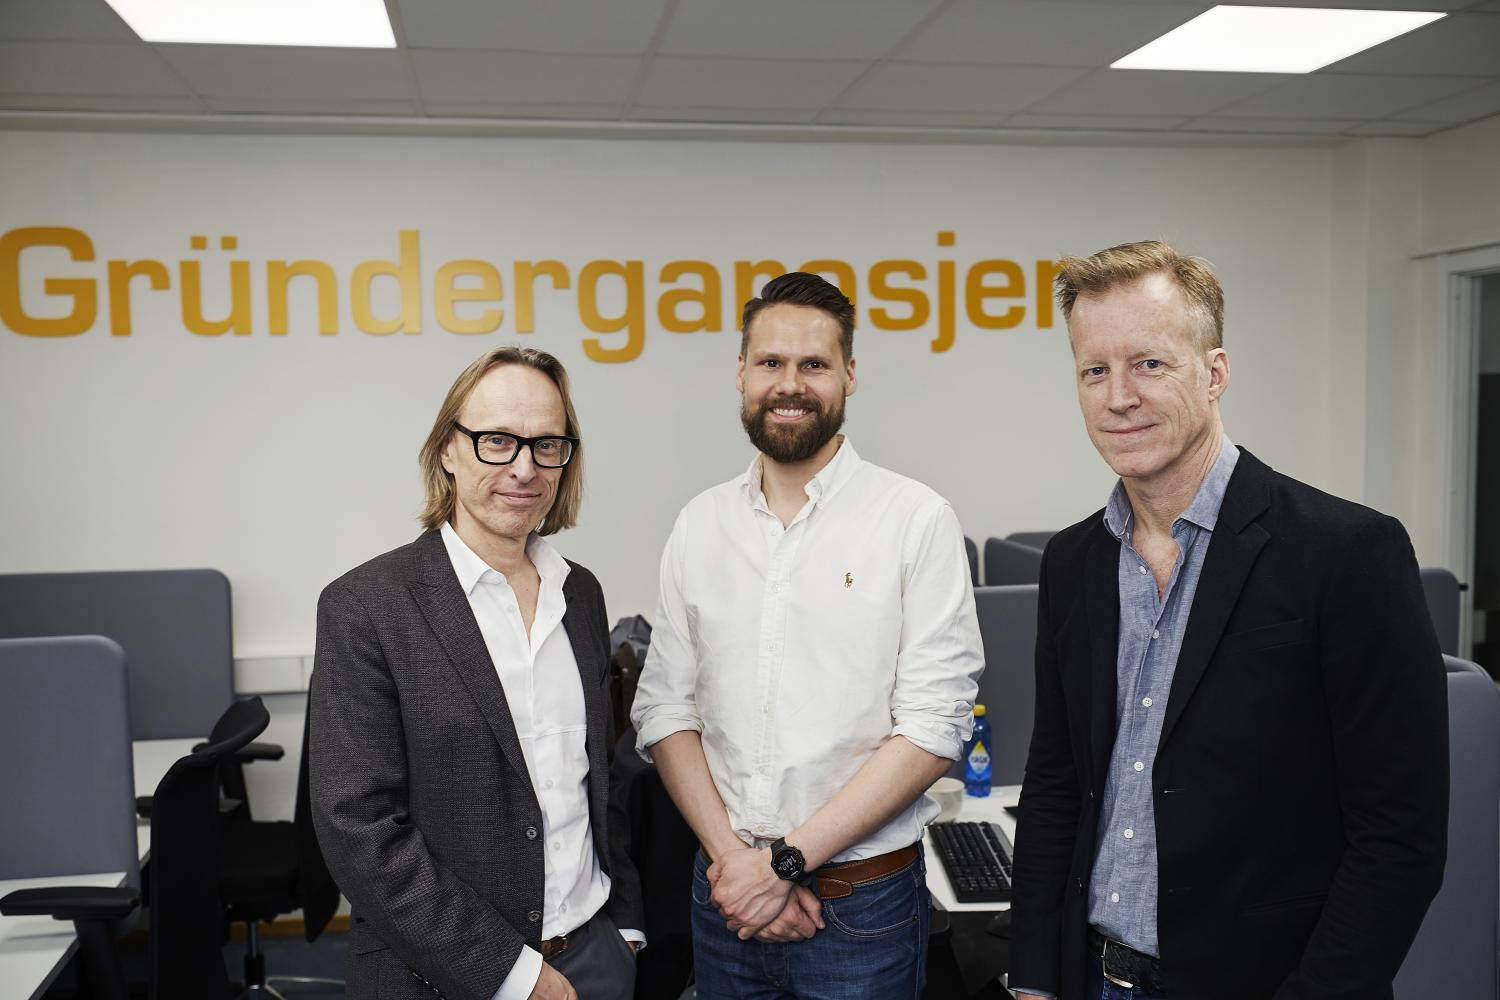 Prorector Morten Irgens, Director of the Simula Garage Christian Bjerke, and Rector Curt Rice of OsloMet. (Photo: Simula/Bård Gudim)